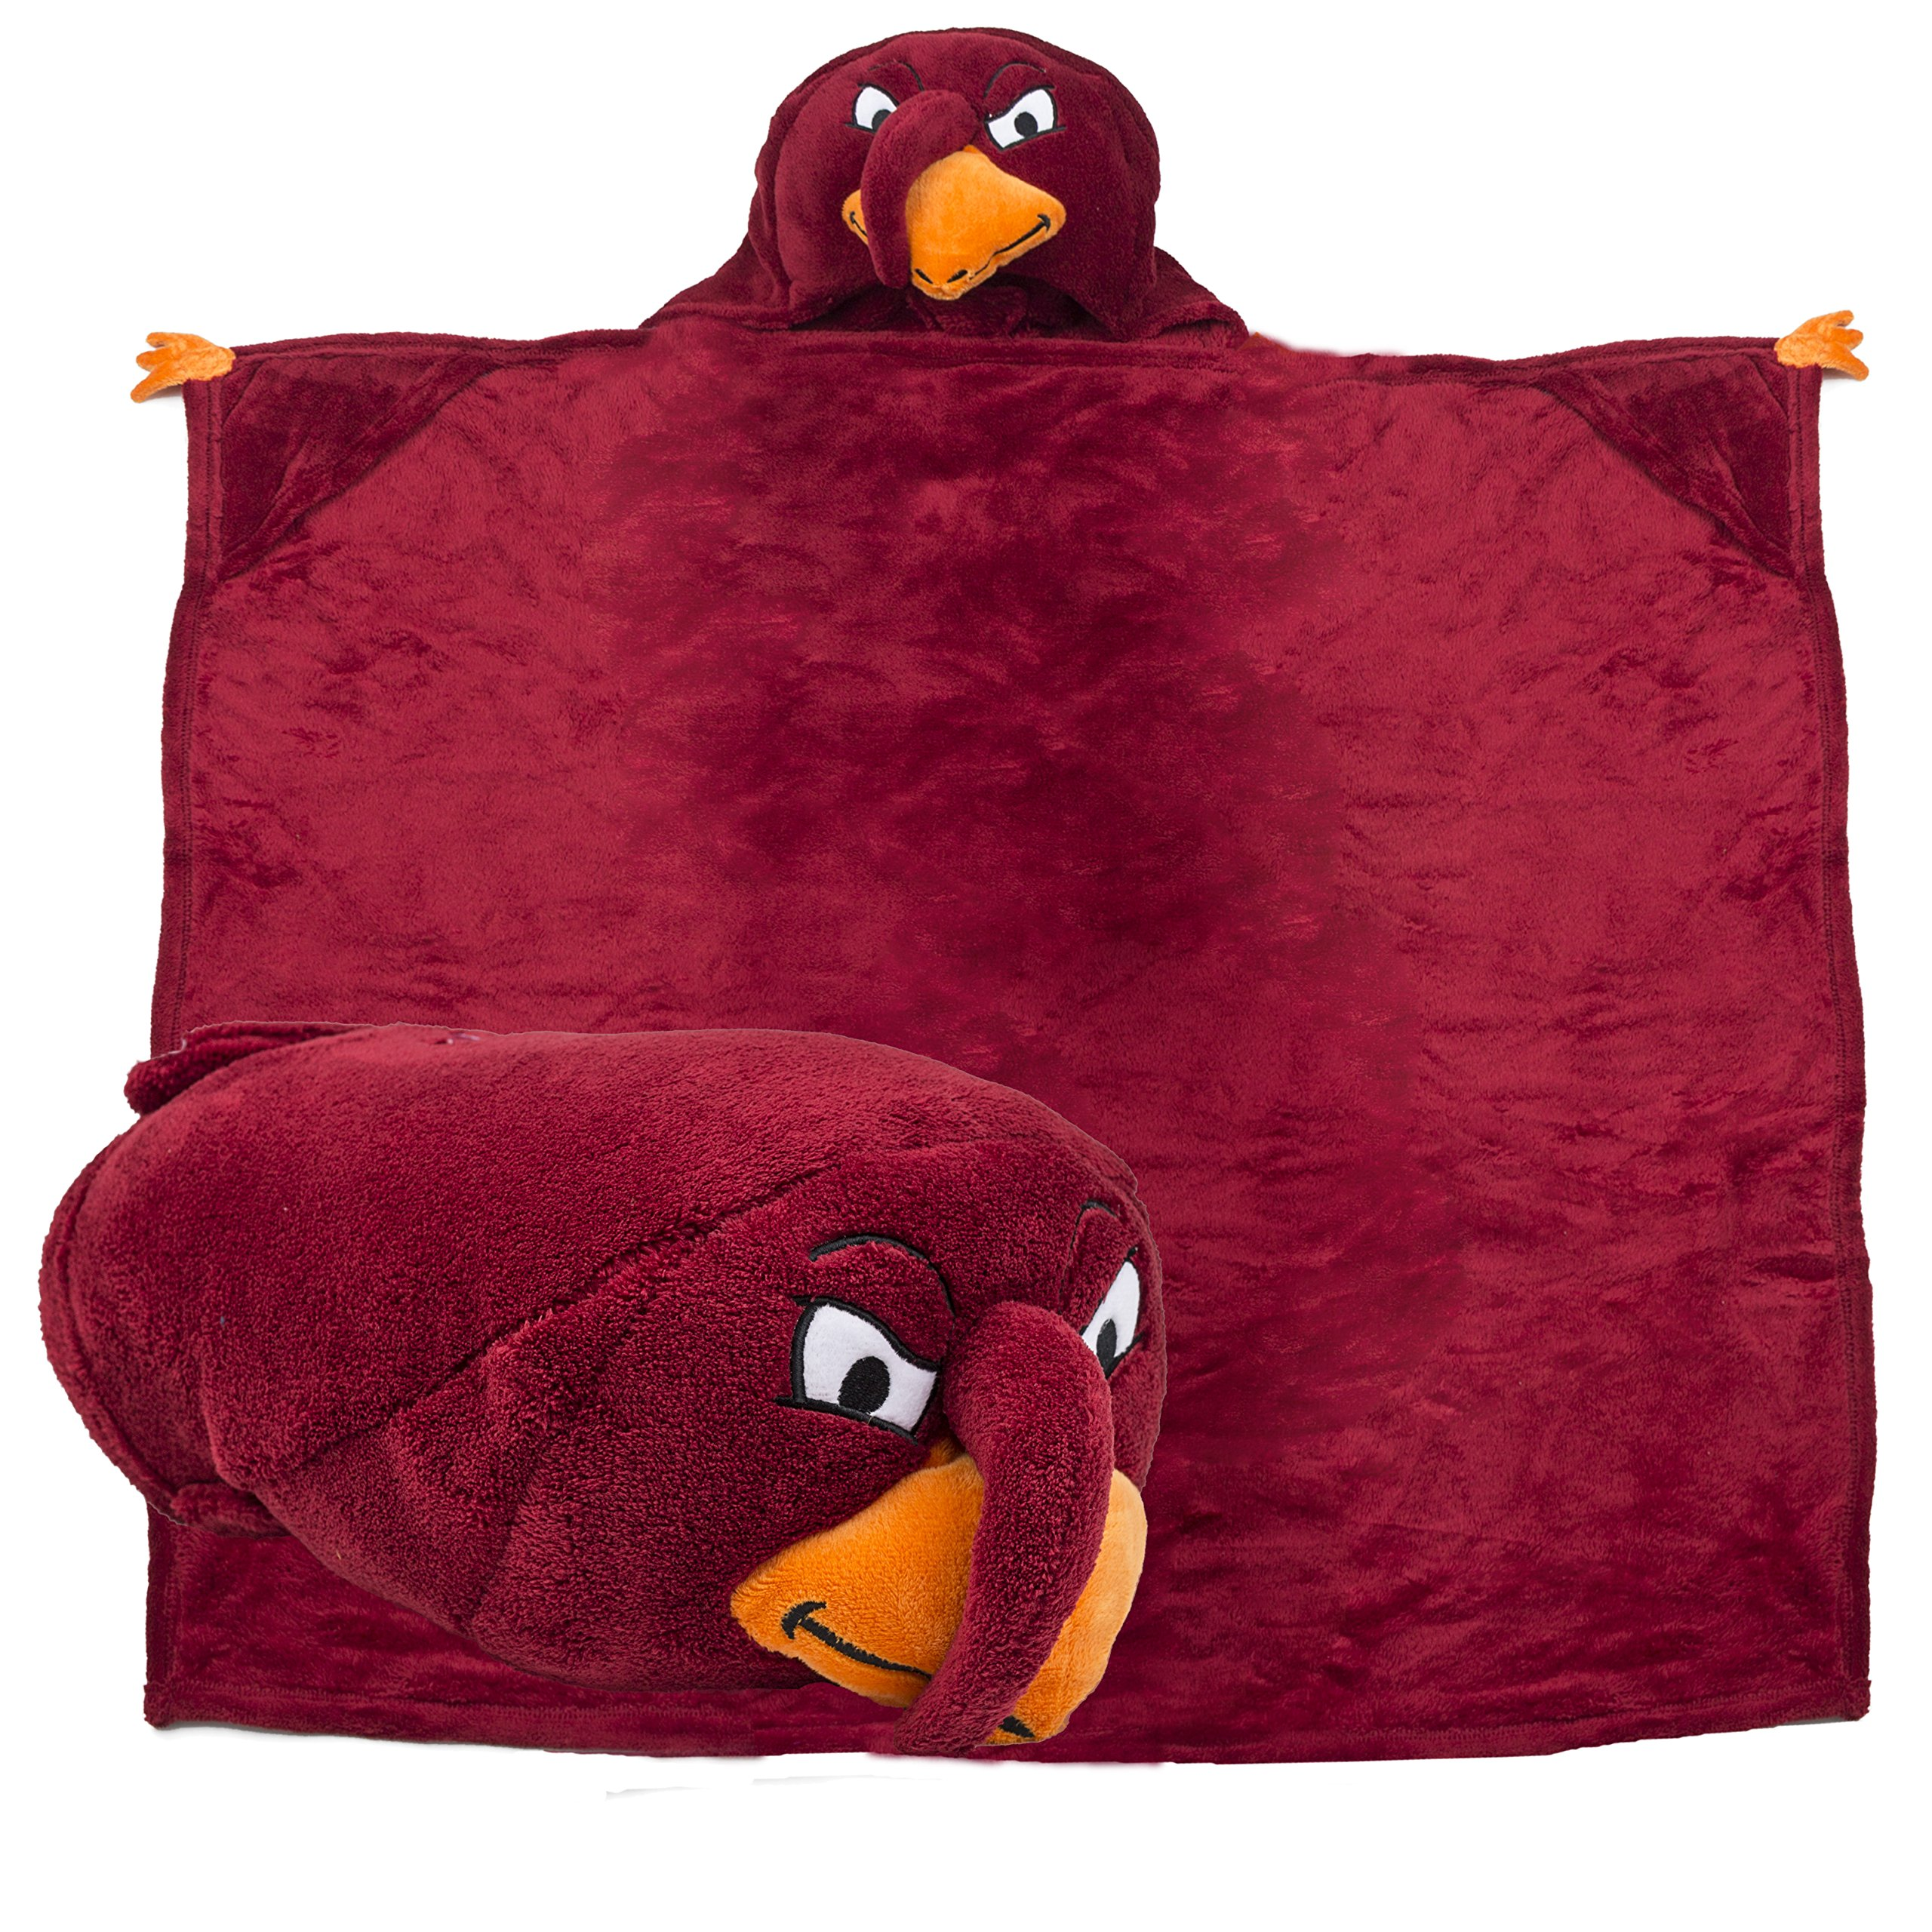 Comfy Critters Stuffed Animal Blanket – College Mascot, Virginia Tech University 'HokieBird' – Kids huggable pillow and blanket perfect for the big game, tailgating, pretend play, and much more